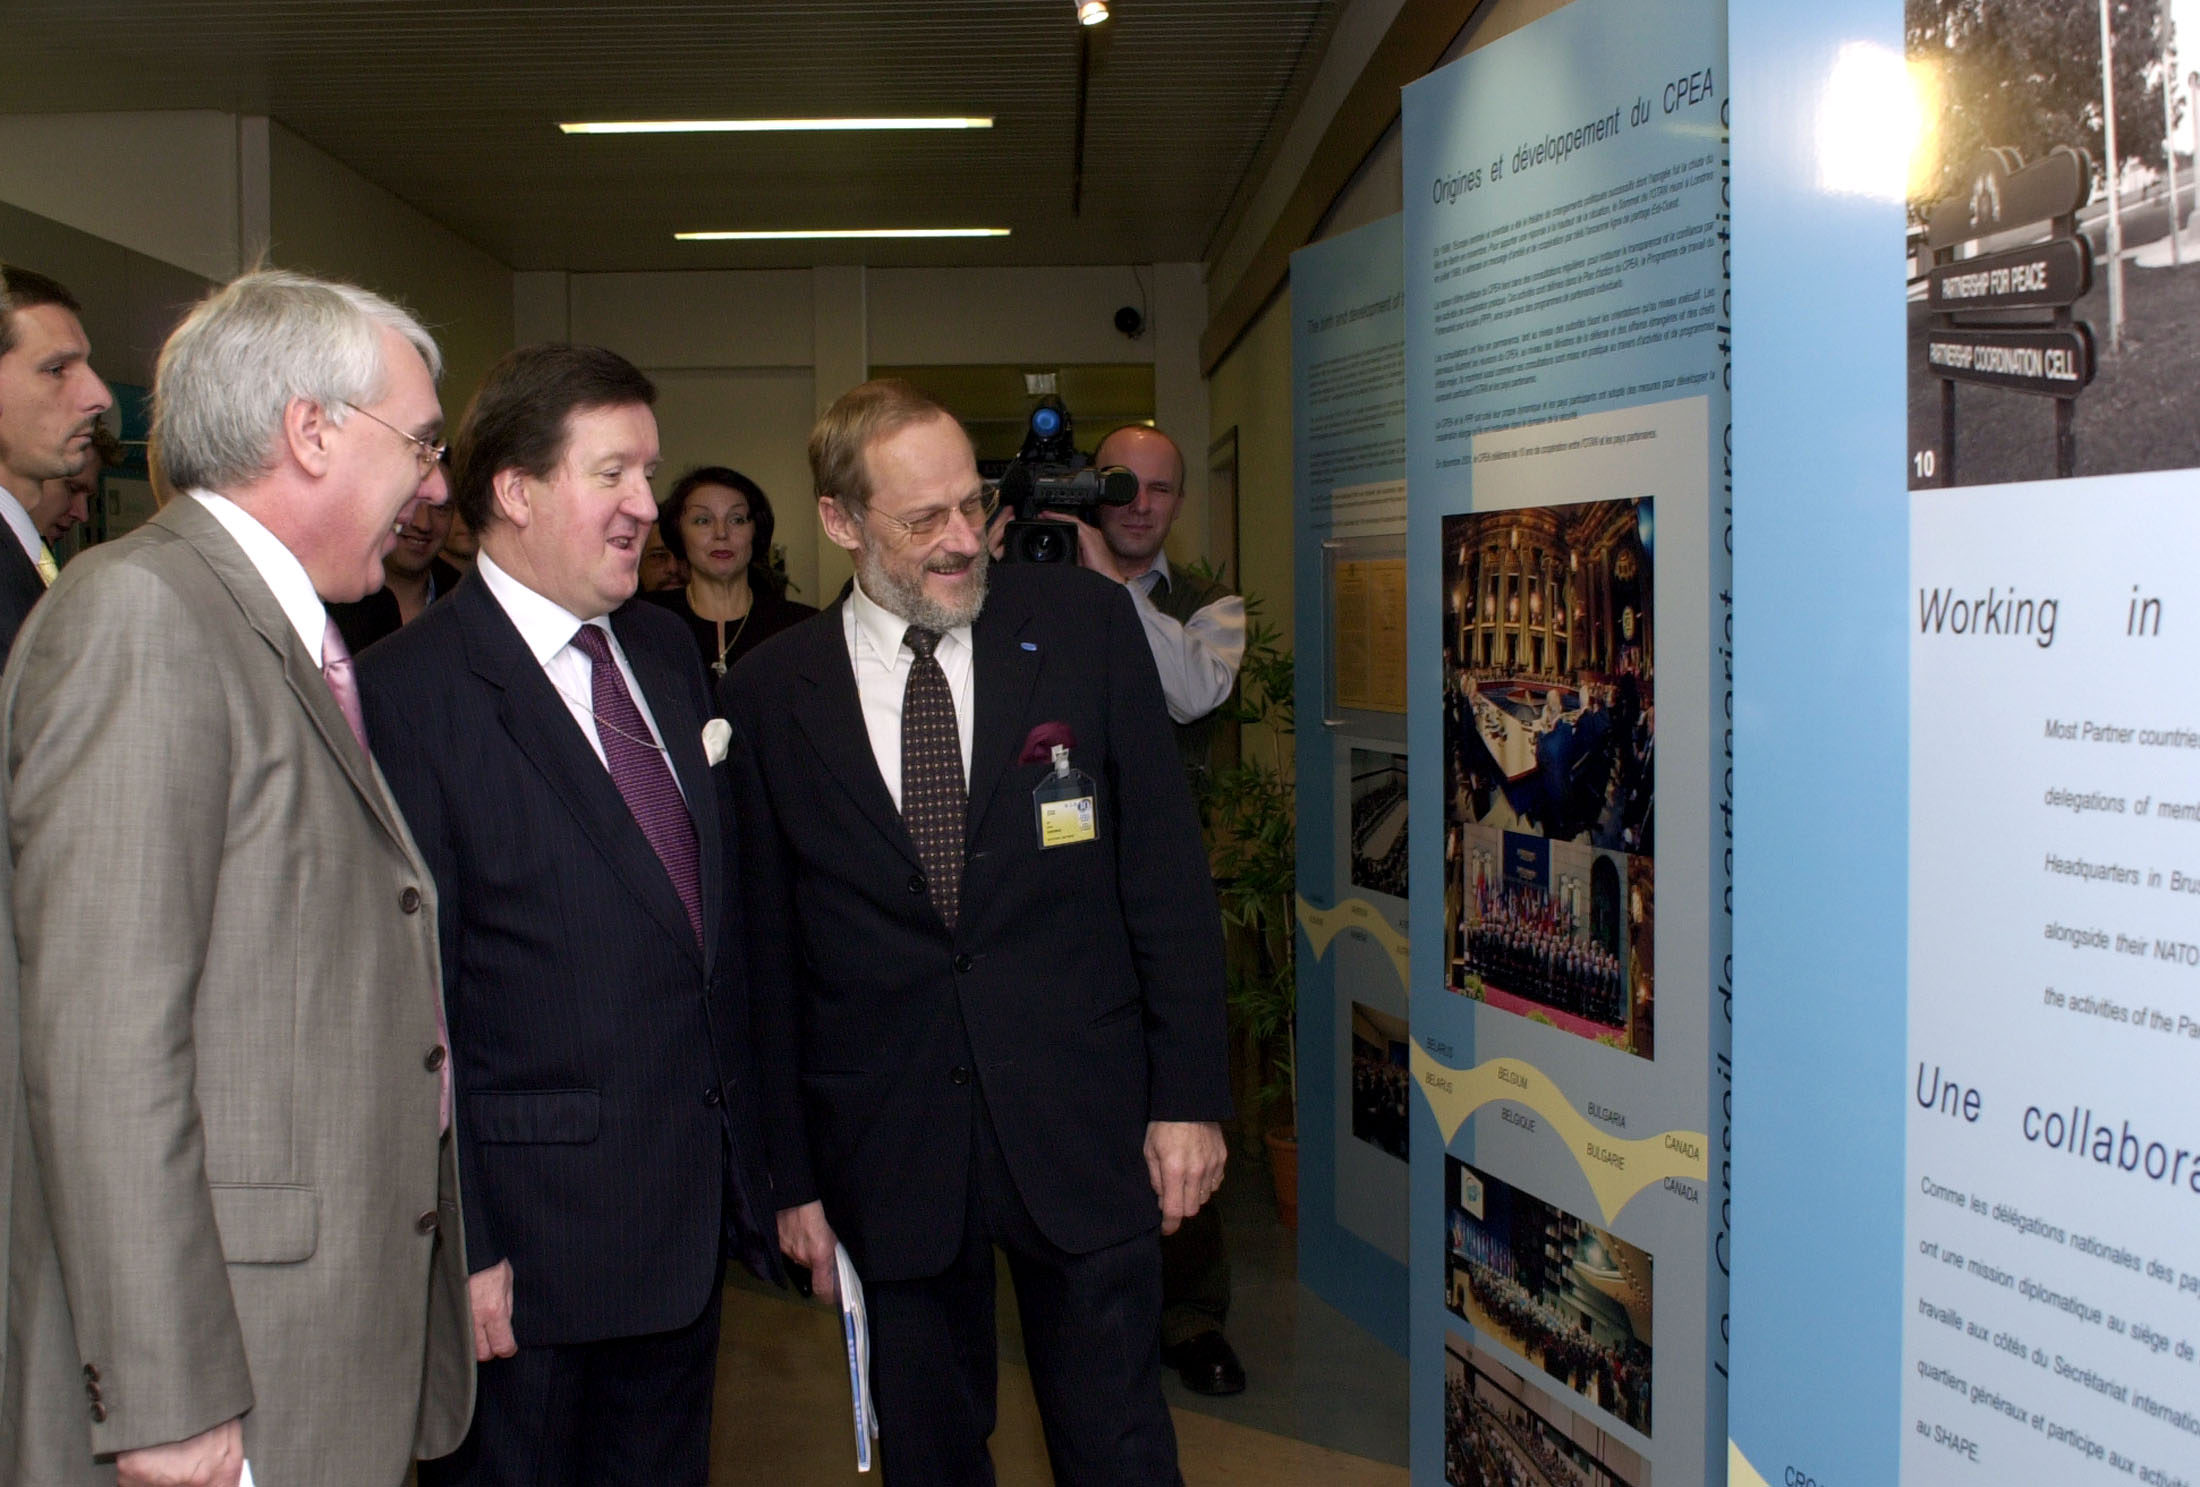 NATO Media Library: Opening of a commemorative exhibition on